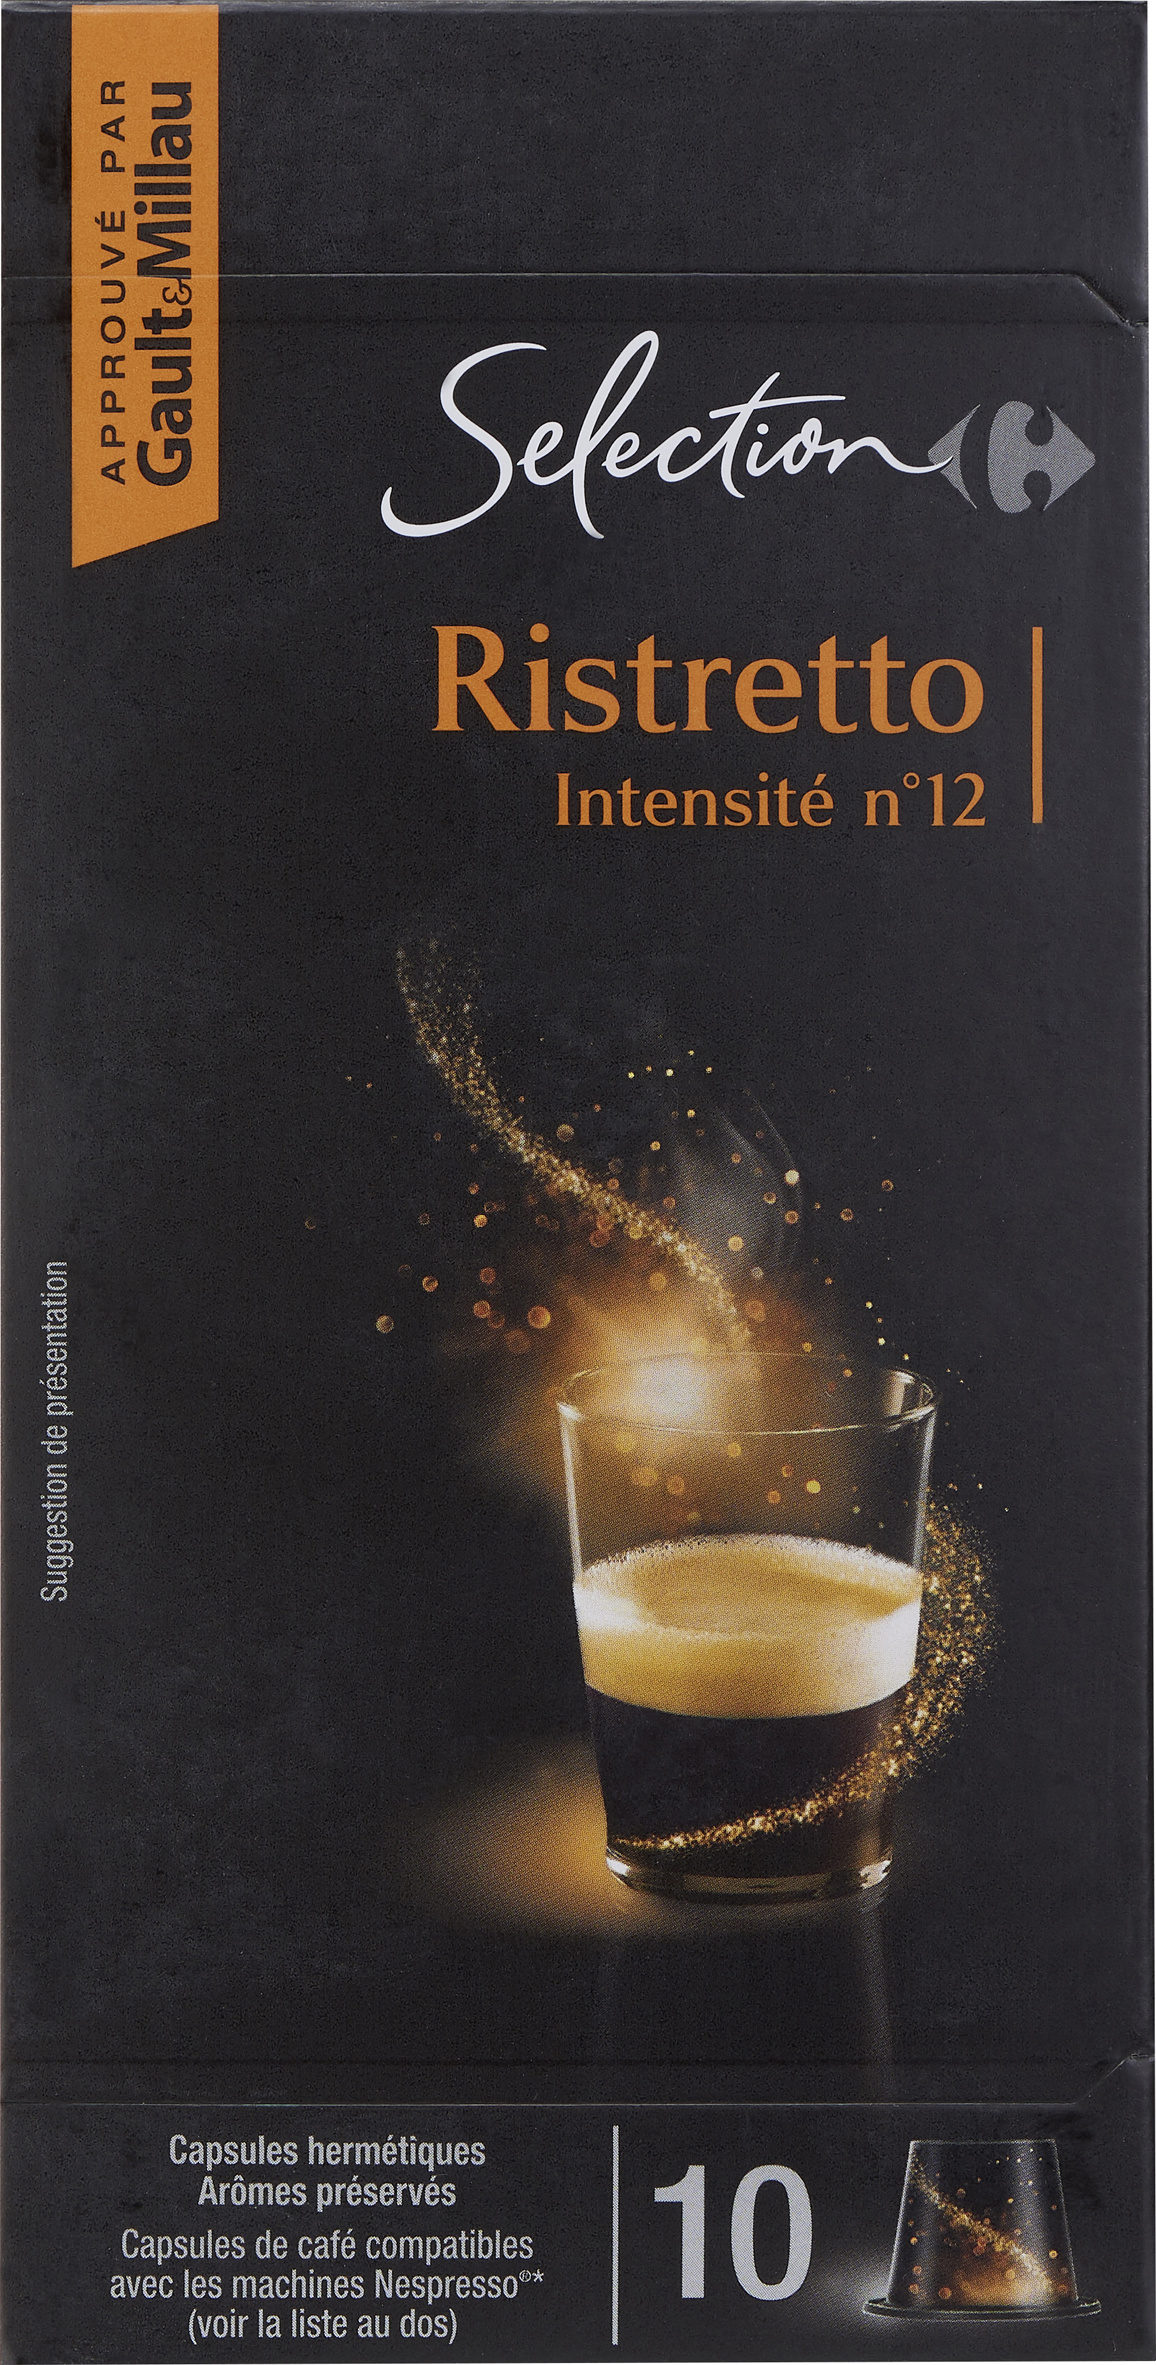 Ristretto Carrefour Selection 52 G 10 Capsules